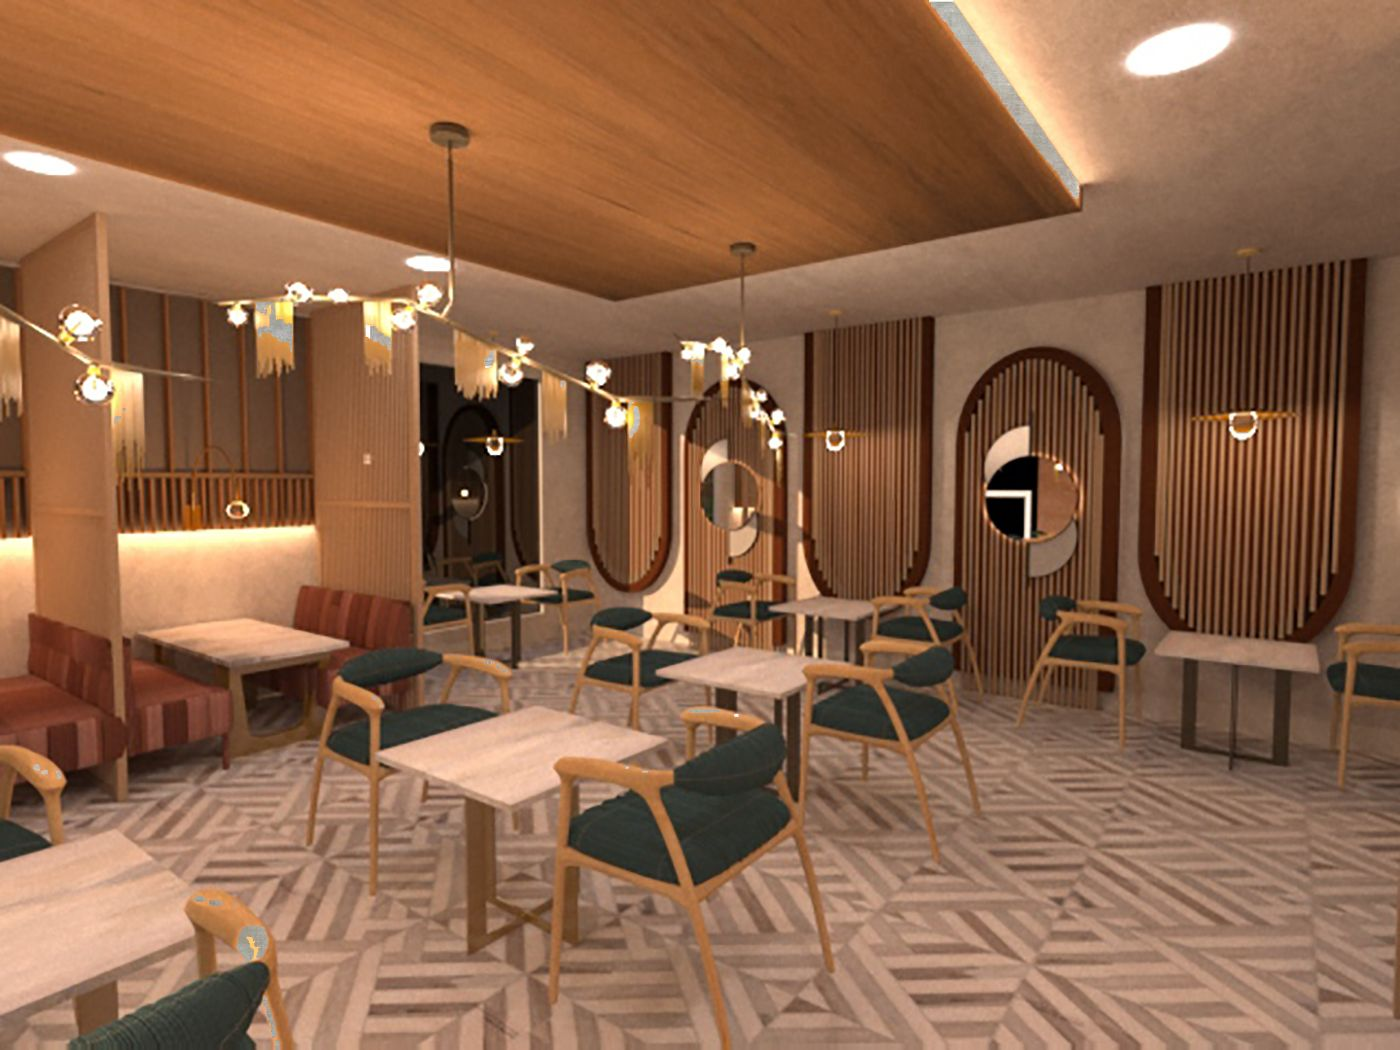 Raw Luminaire - Booth Seating Area 1